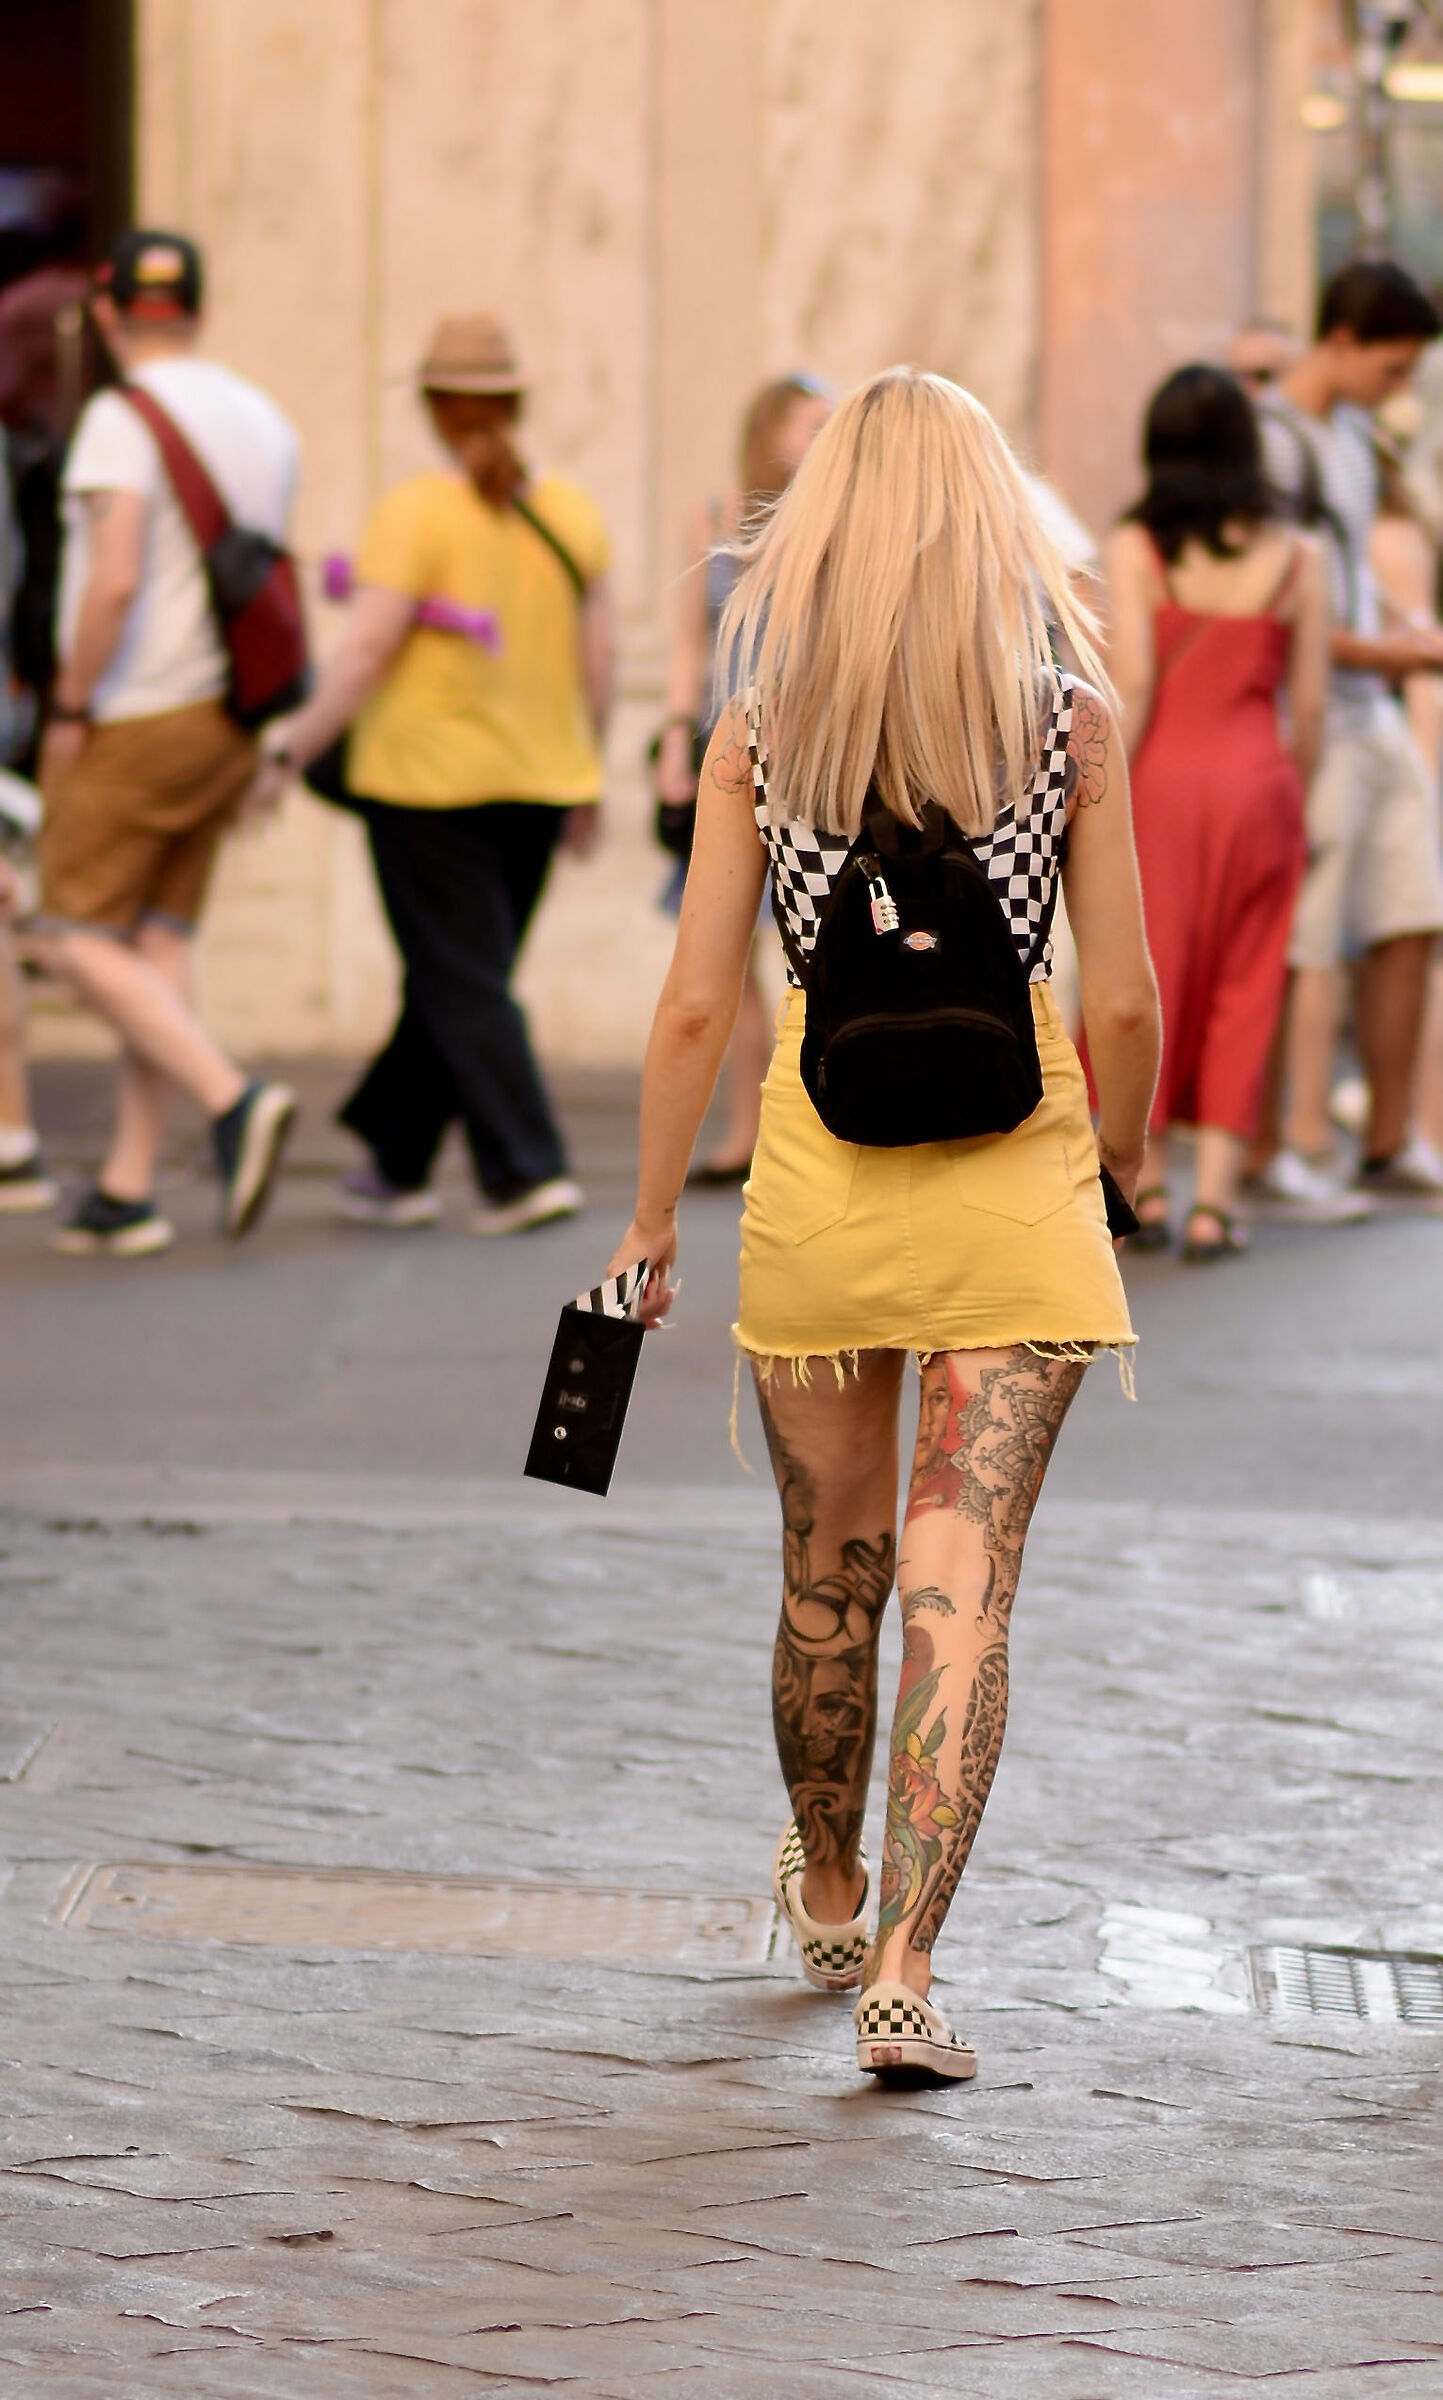 Tattooed girl...